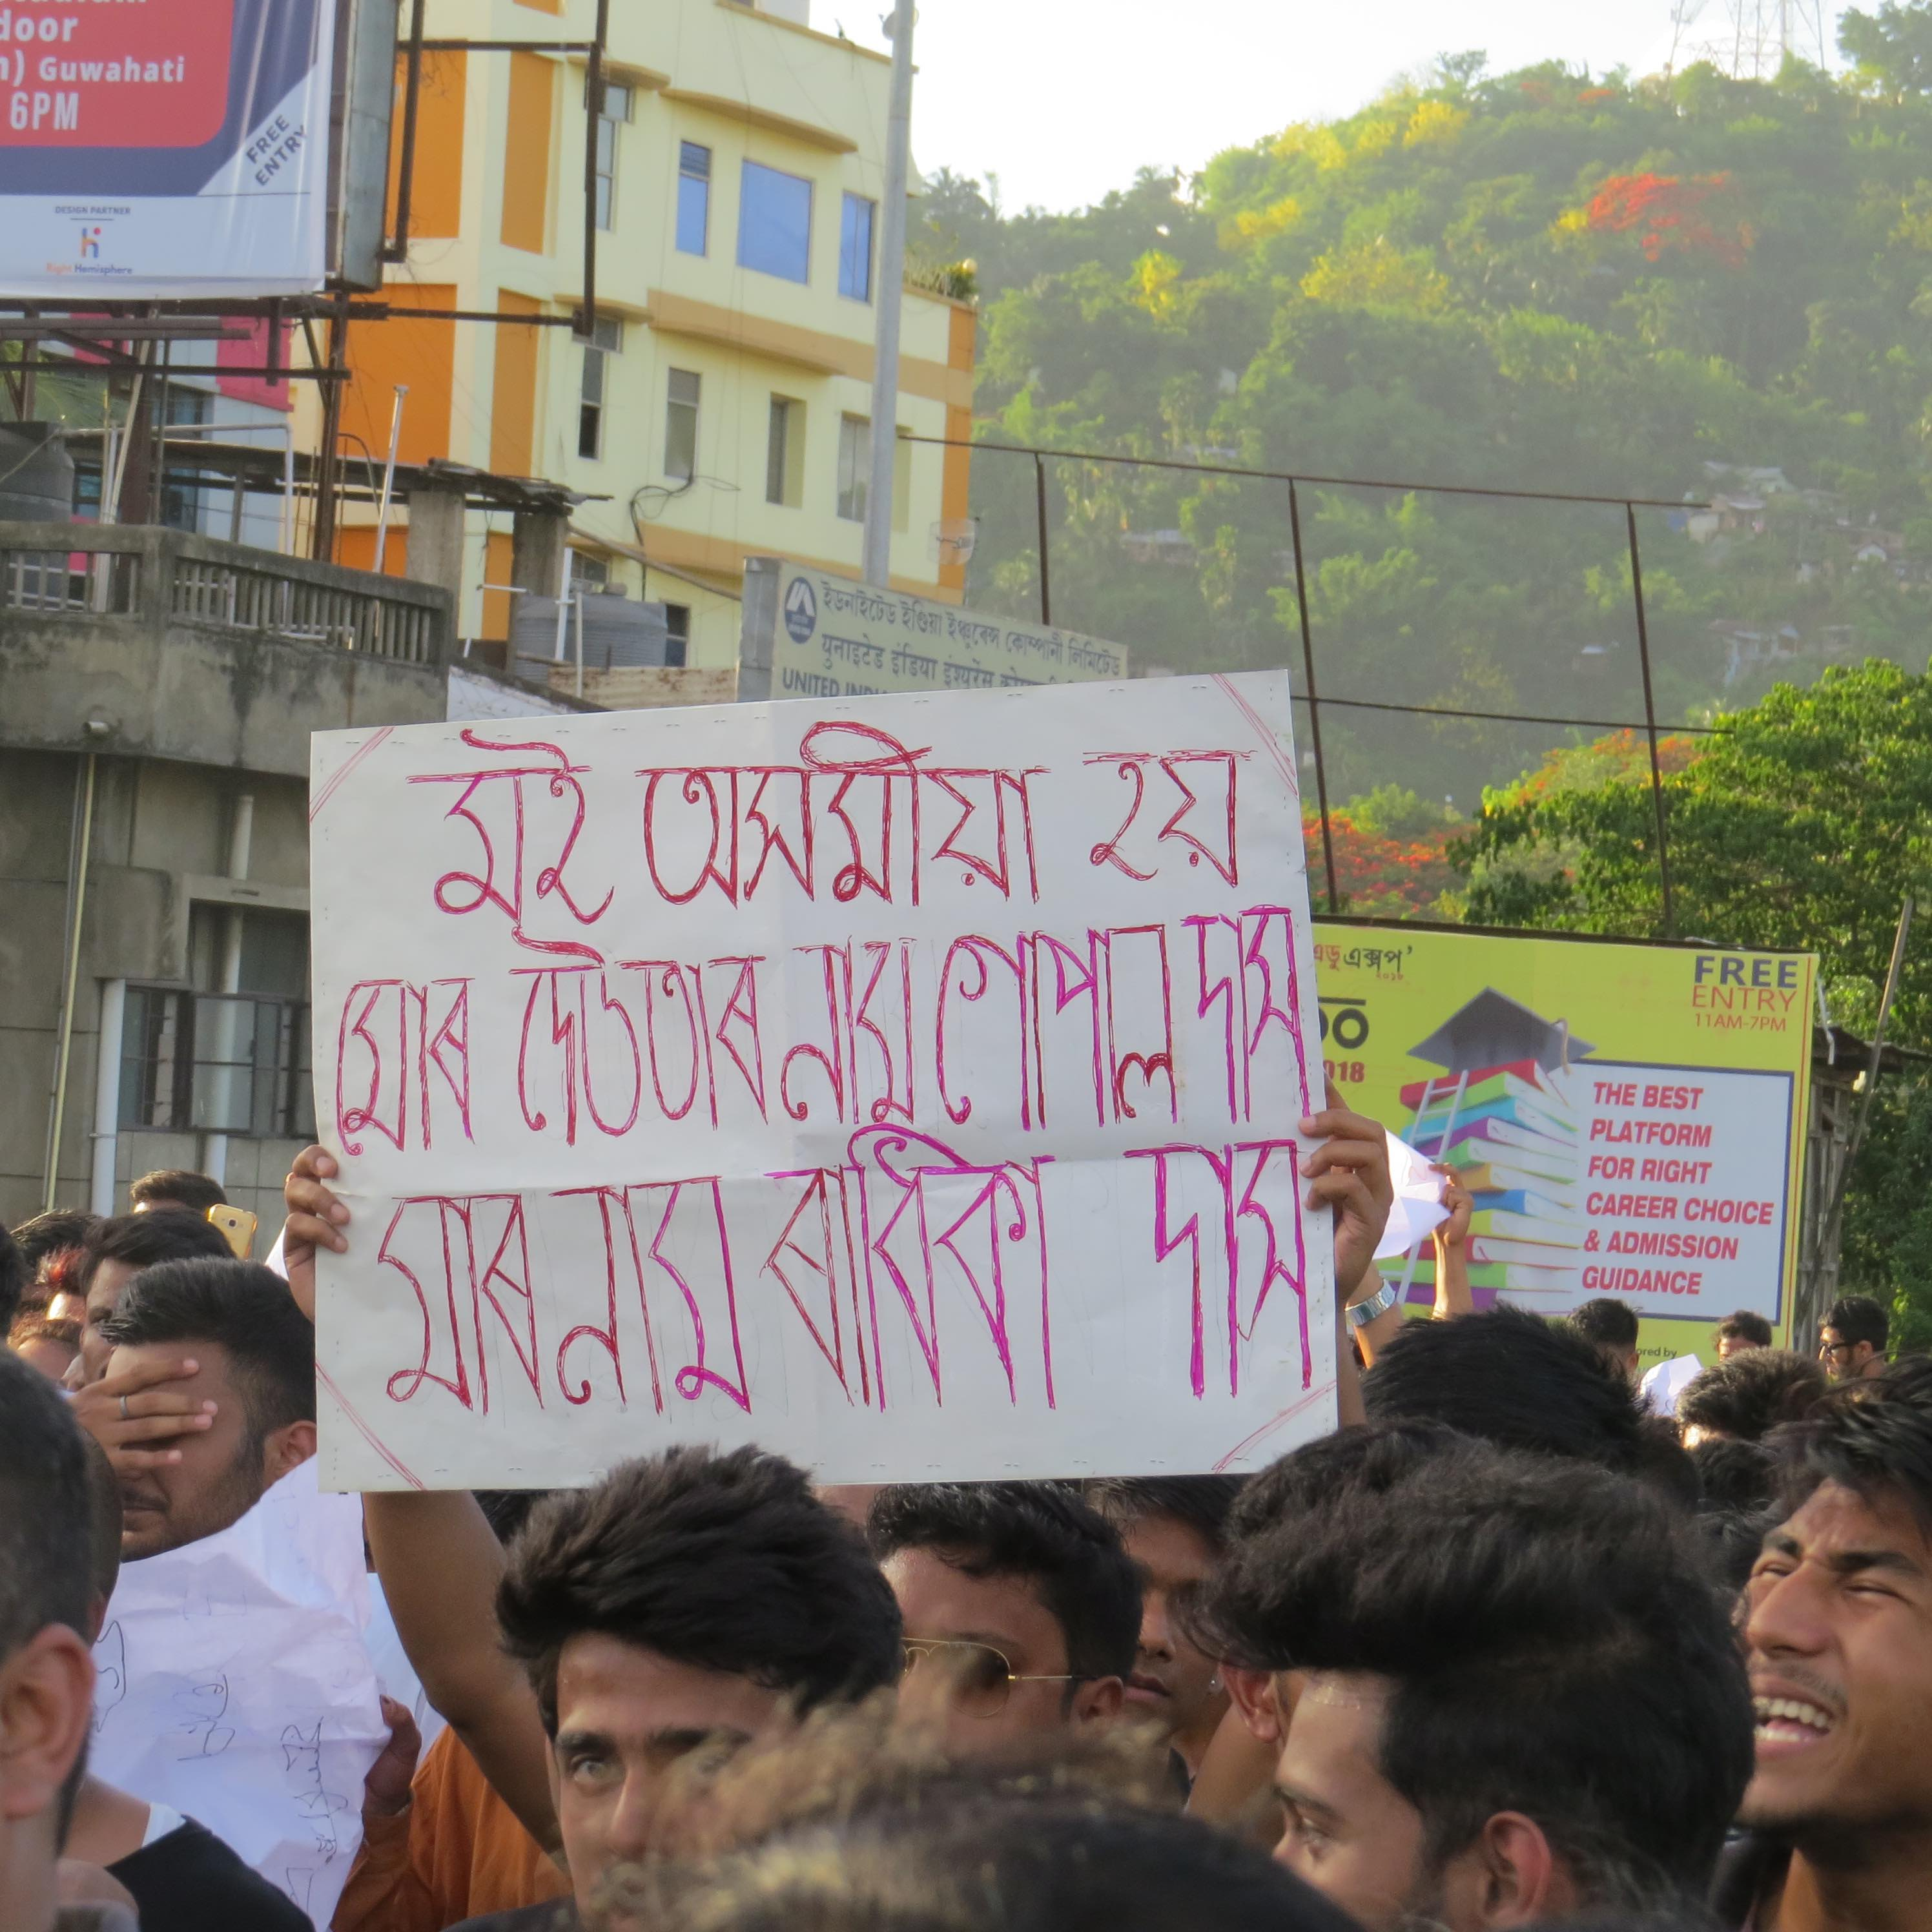 """At a spontaneous protest in Guwahati on June 10, a protestor holds up a poster that quotes Nilotpal Das's last words that were captured on video. He said, """"'I am an Assamese. My father's name is Gopal Das. My mother's name is Radhika Das."""" Credit: Shaheen Ahmed"""